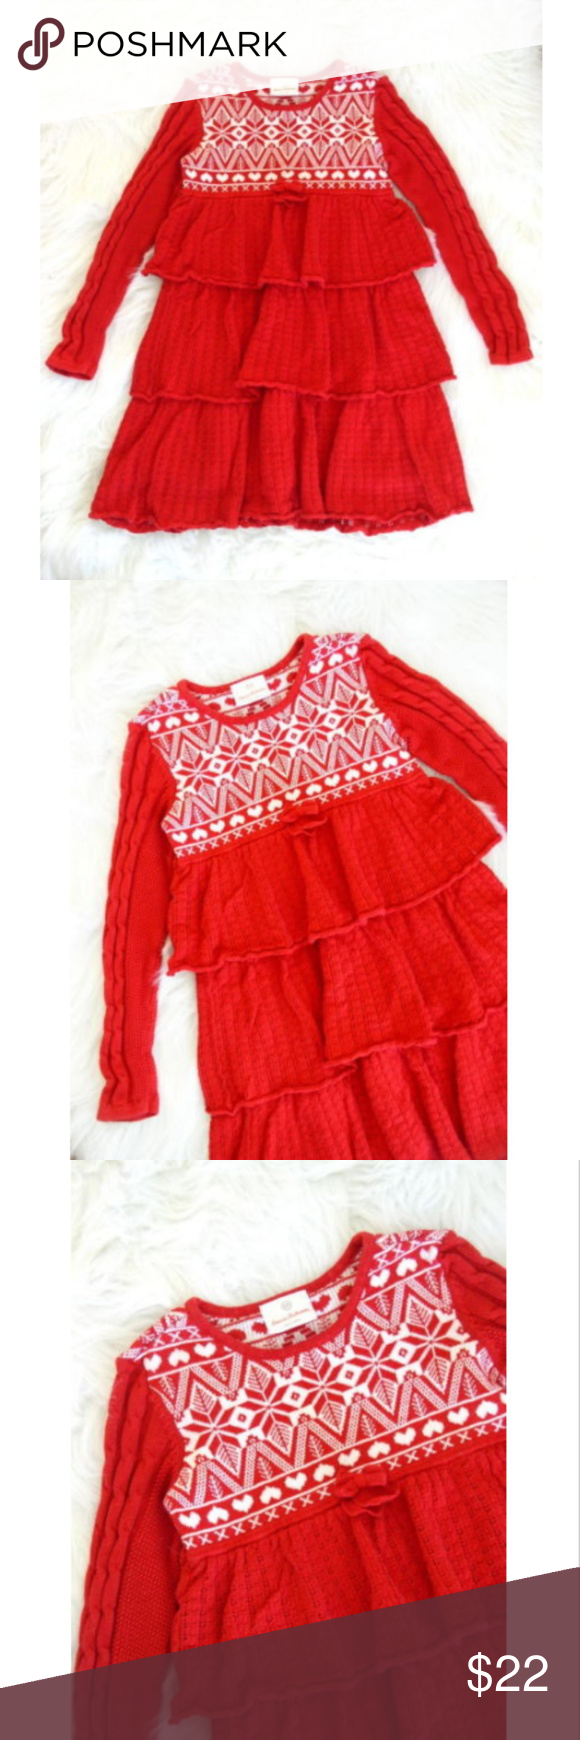 28a5cb27ce Hanna Andersson Red   White Holiday Sweater Dress Hanna Andersson girls  holiday sweater dress. Red and white cotton knit dress with a nordic  patterned ...